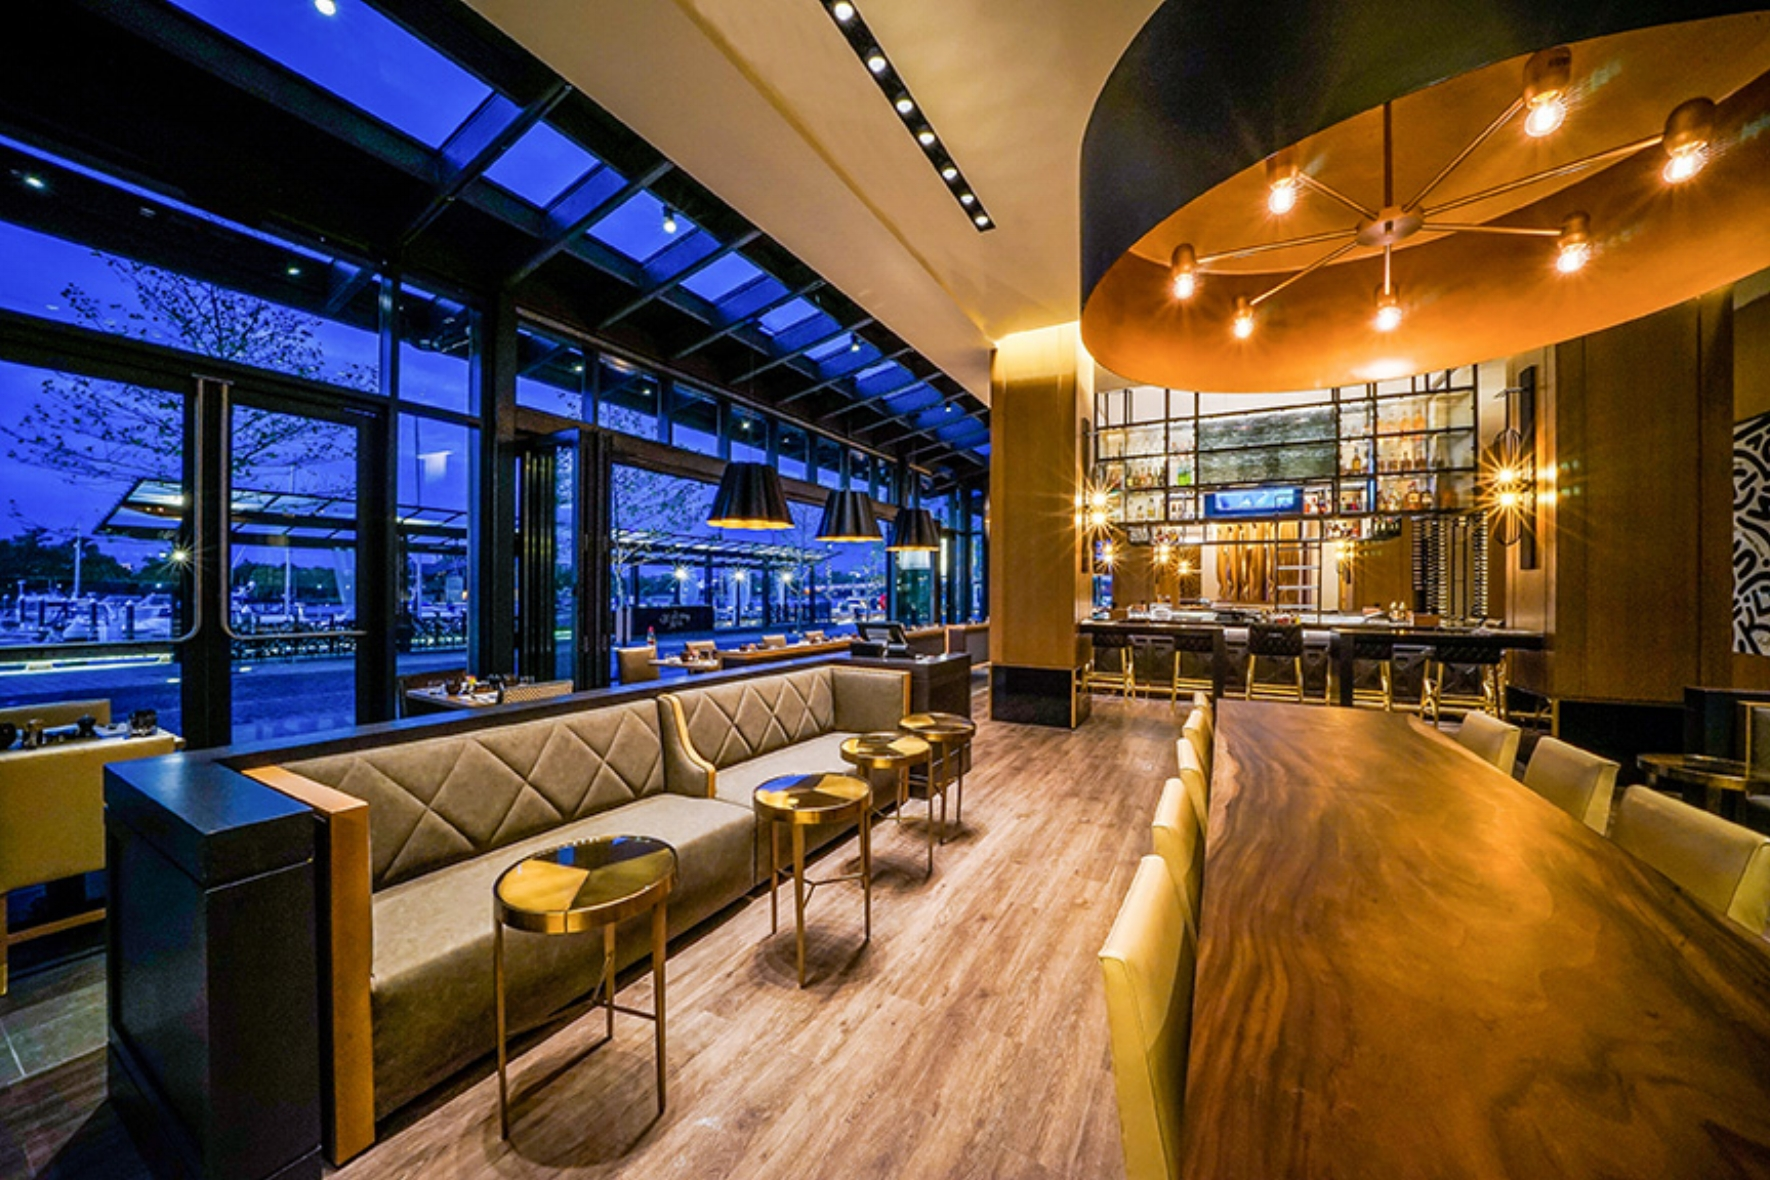 Parker-Torres Kith and Kin in InterContinental The Wharf